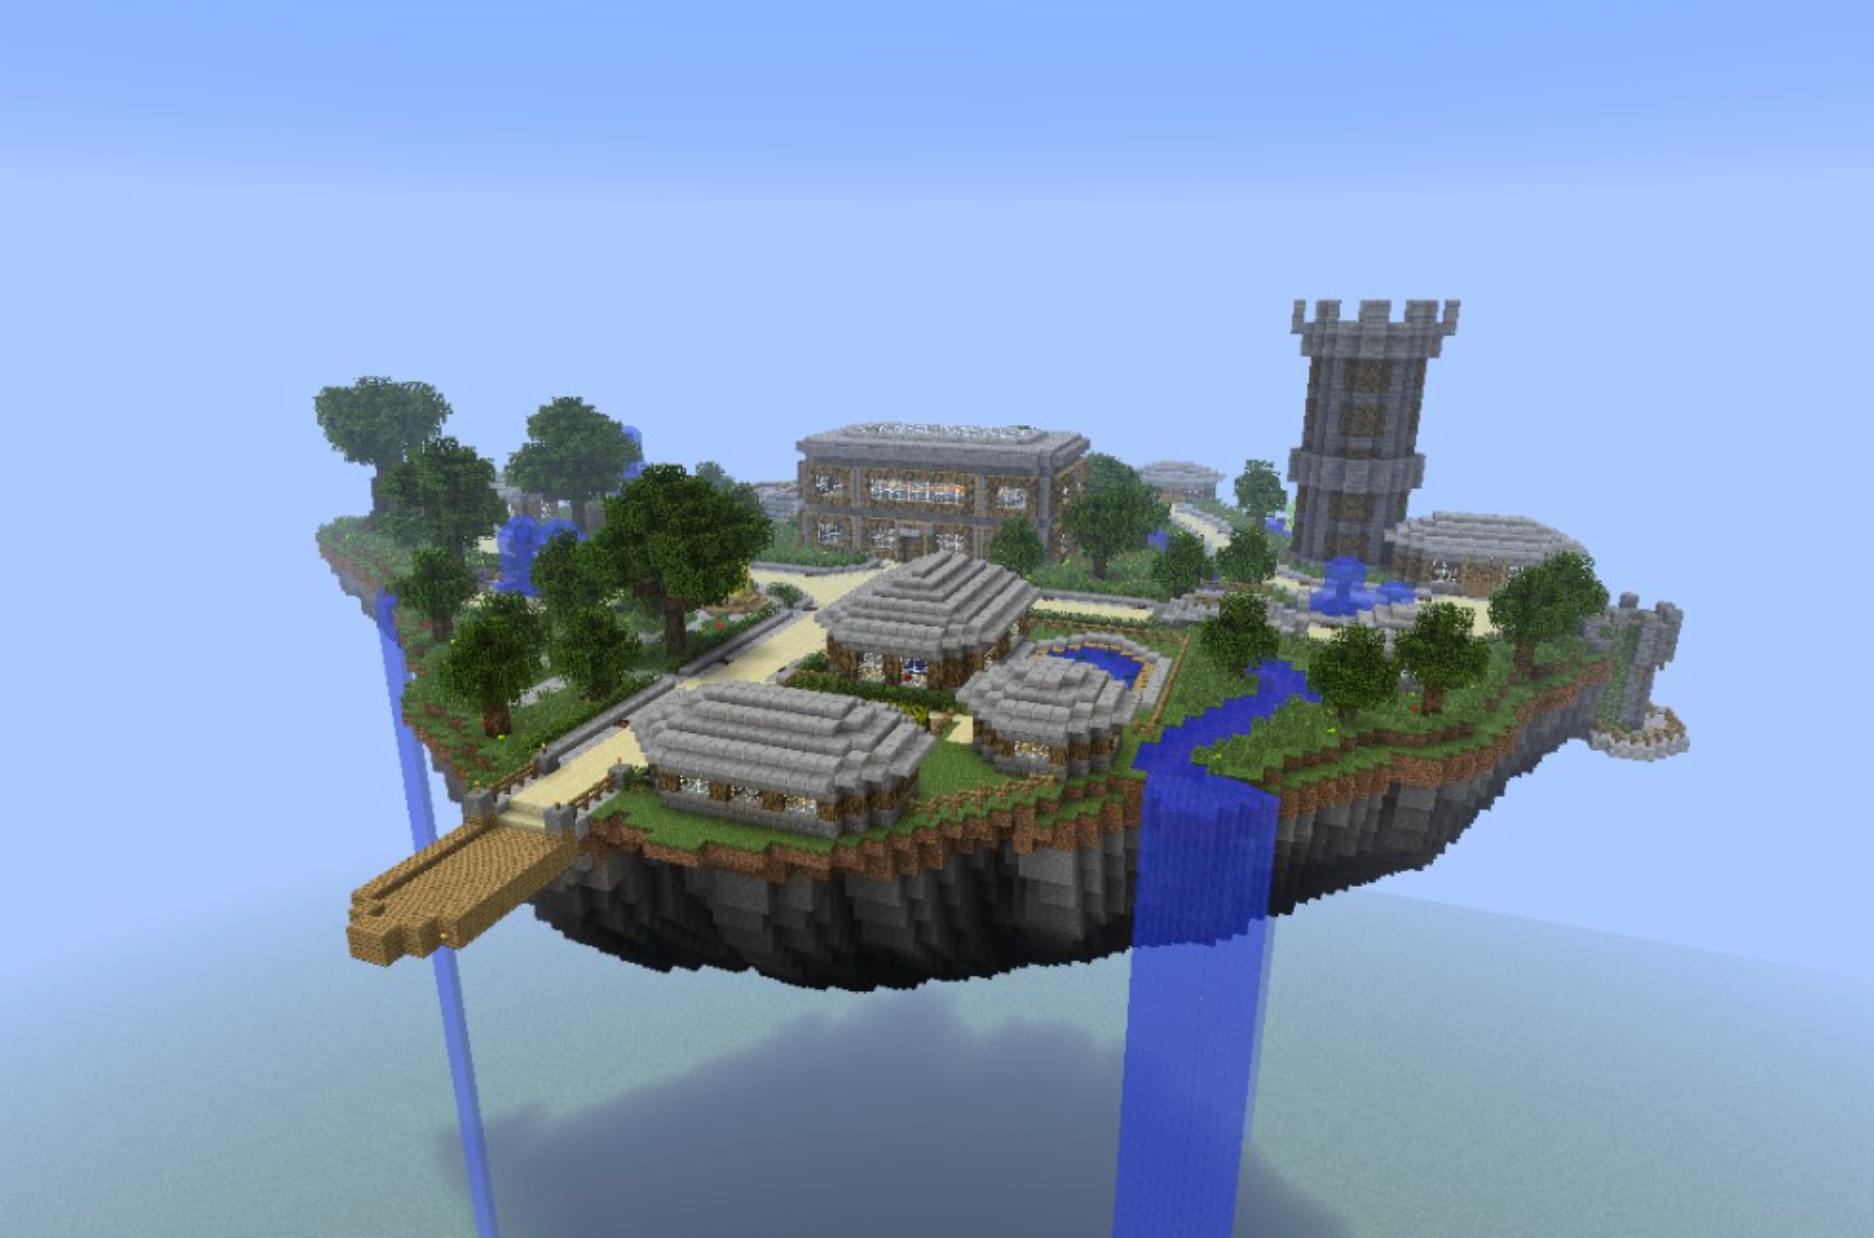 Join a team of builders to design a fantasy castle in a sprawling Minecraft kingdom!